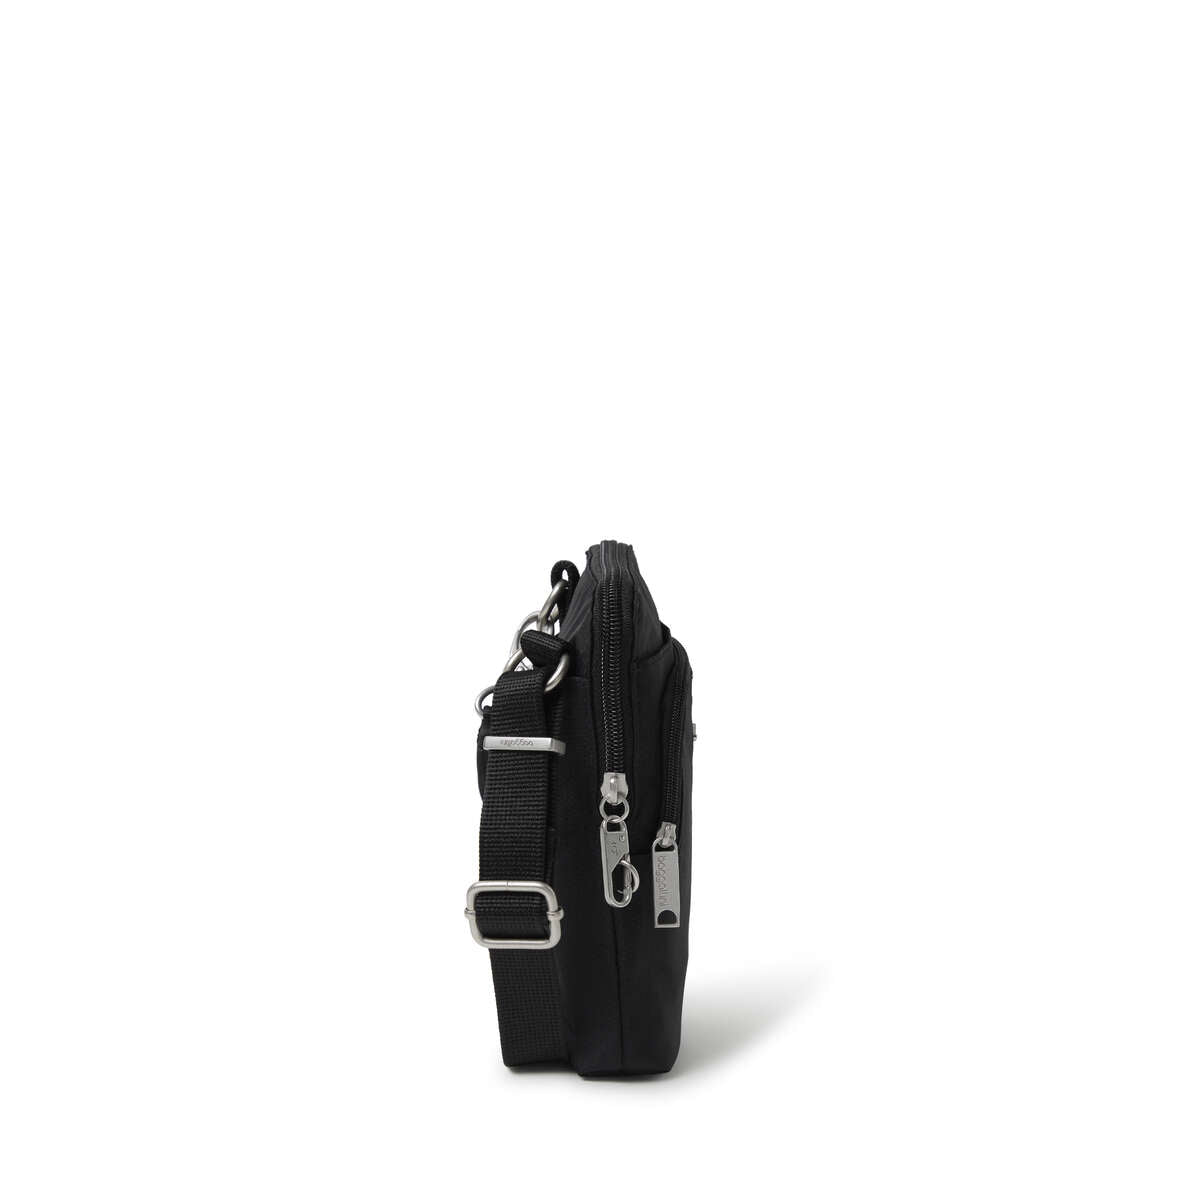 Baggallini Activity Crossbody - Black